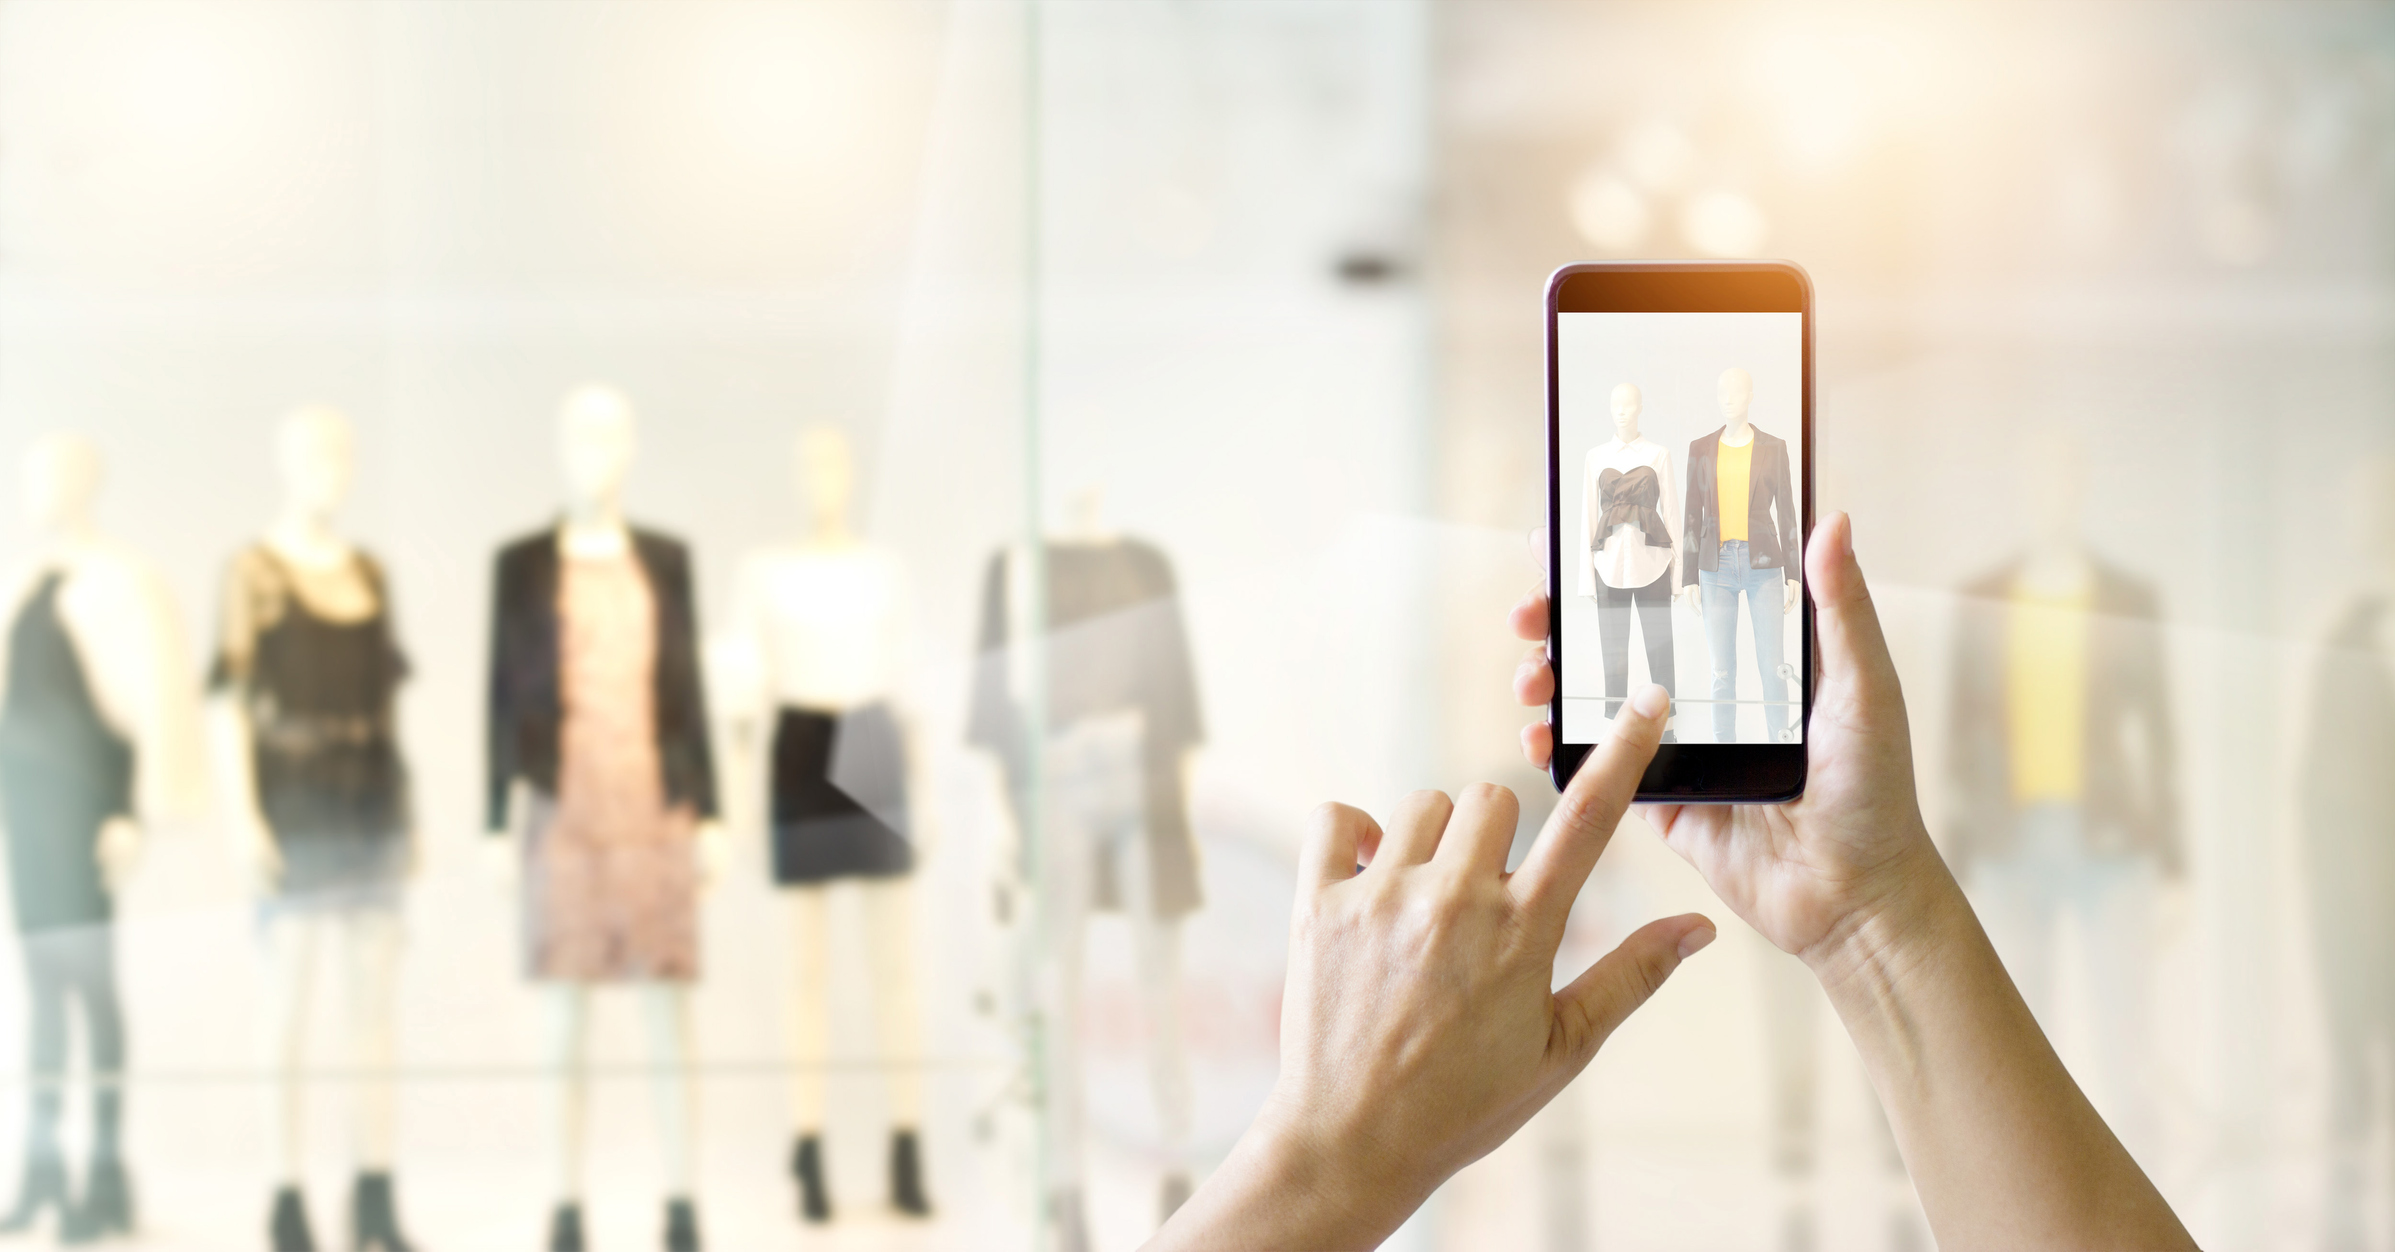 Apparel retailers struggling to weather the COVID storm will be wise to pin their hopes on seamless customer-friendly technology.